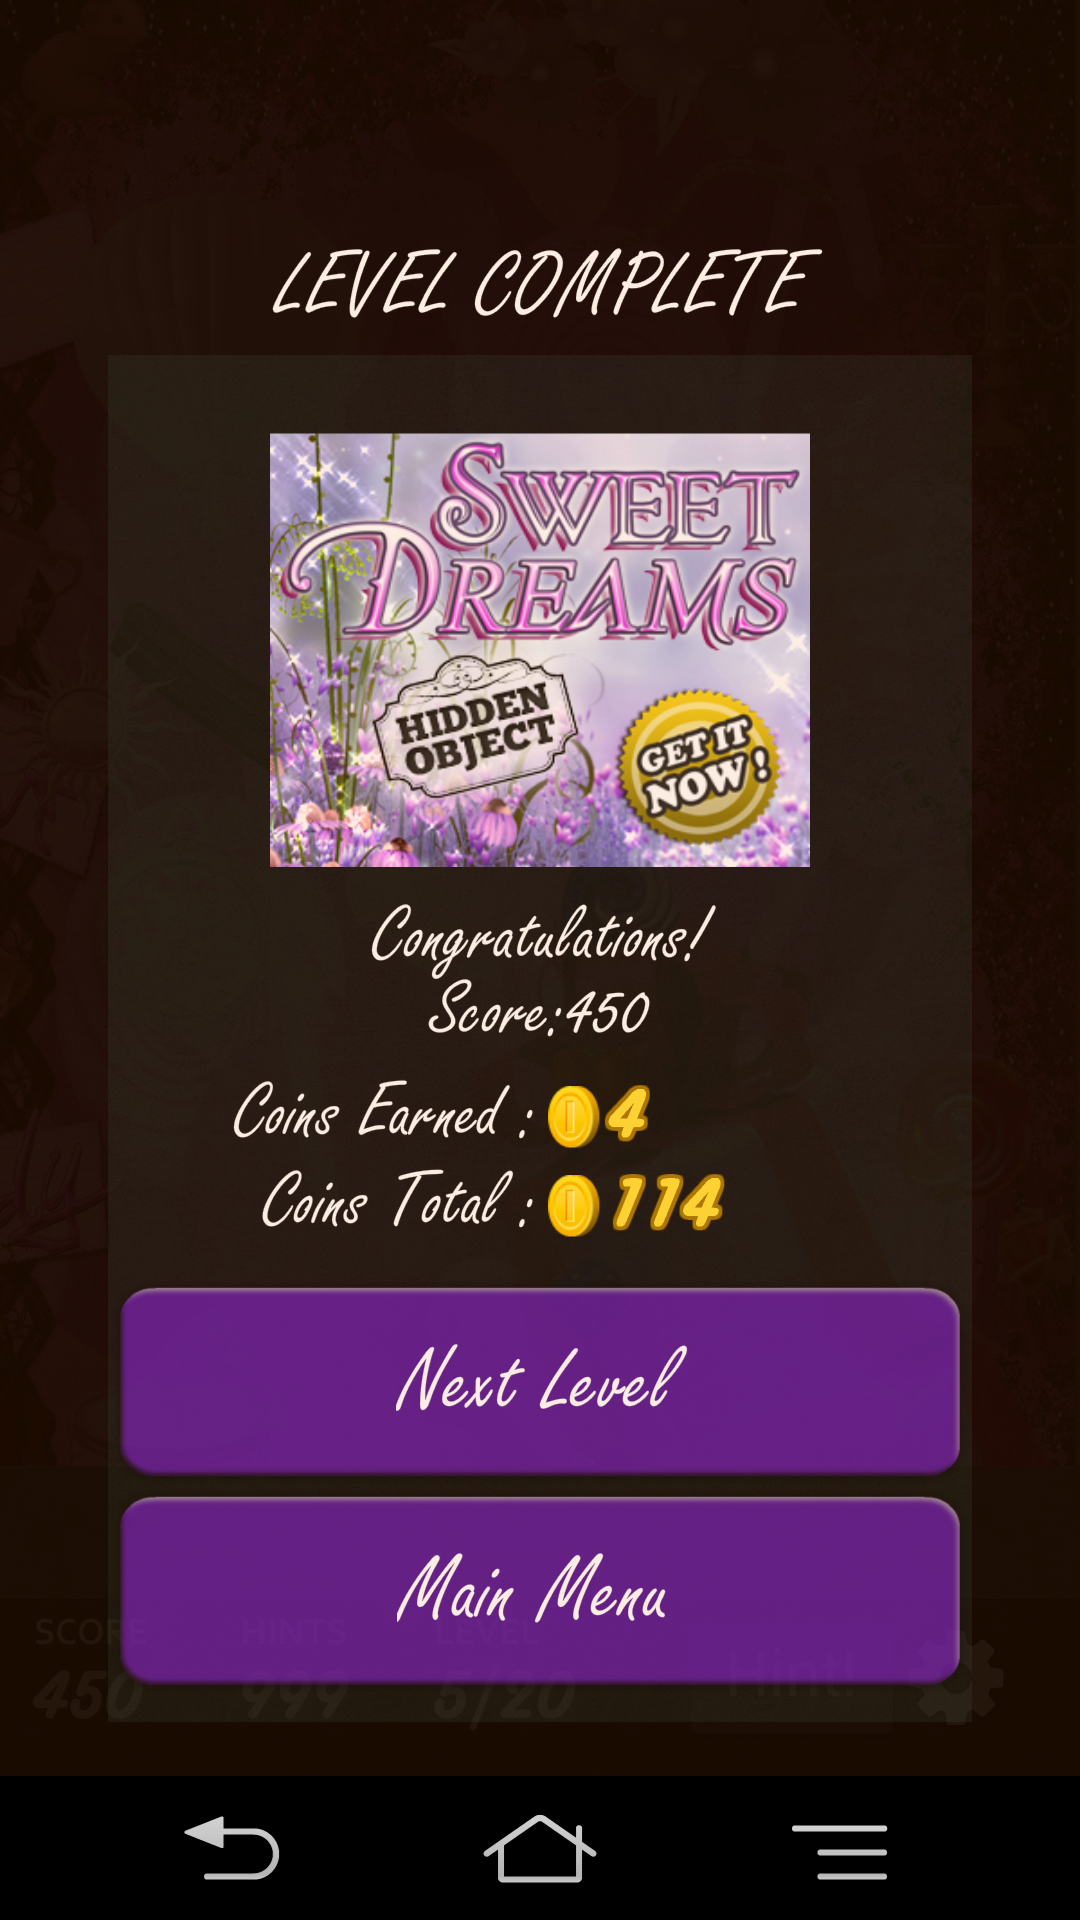 androidアプリ Hidden Object - Candy Crunch攻略スクリーンショット1